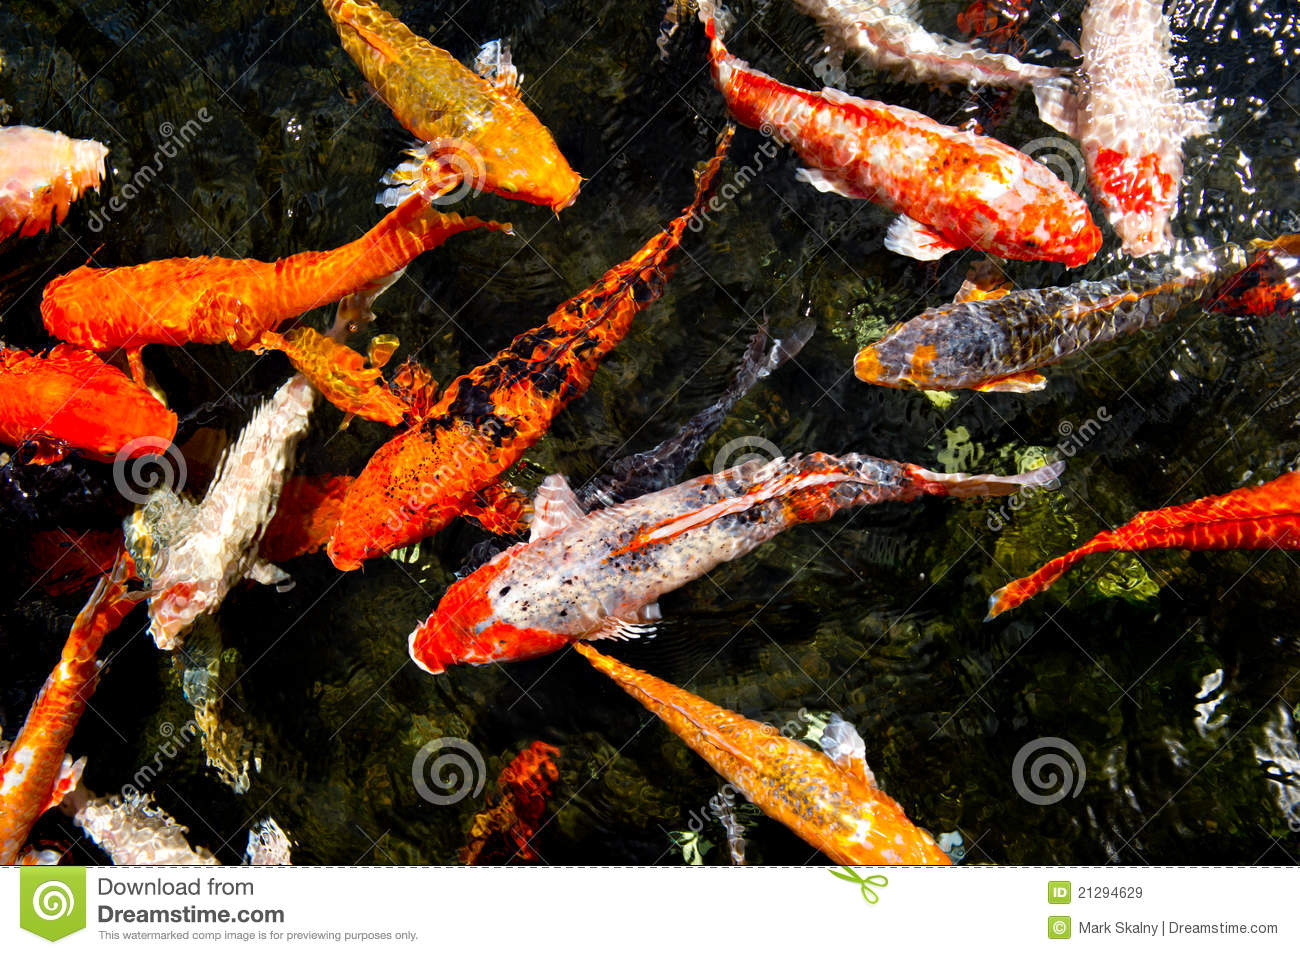 Colorful koi fish in a pond stock image image 21294629 for Colorful pond fish